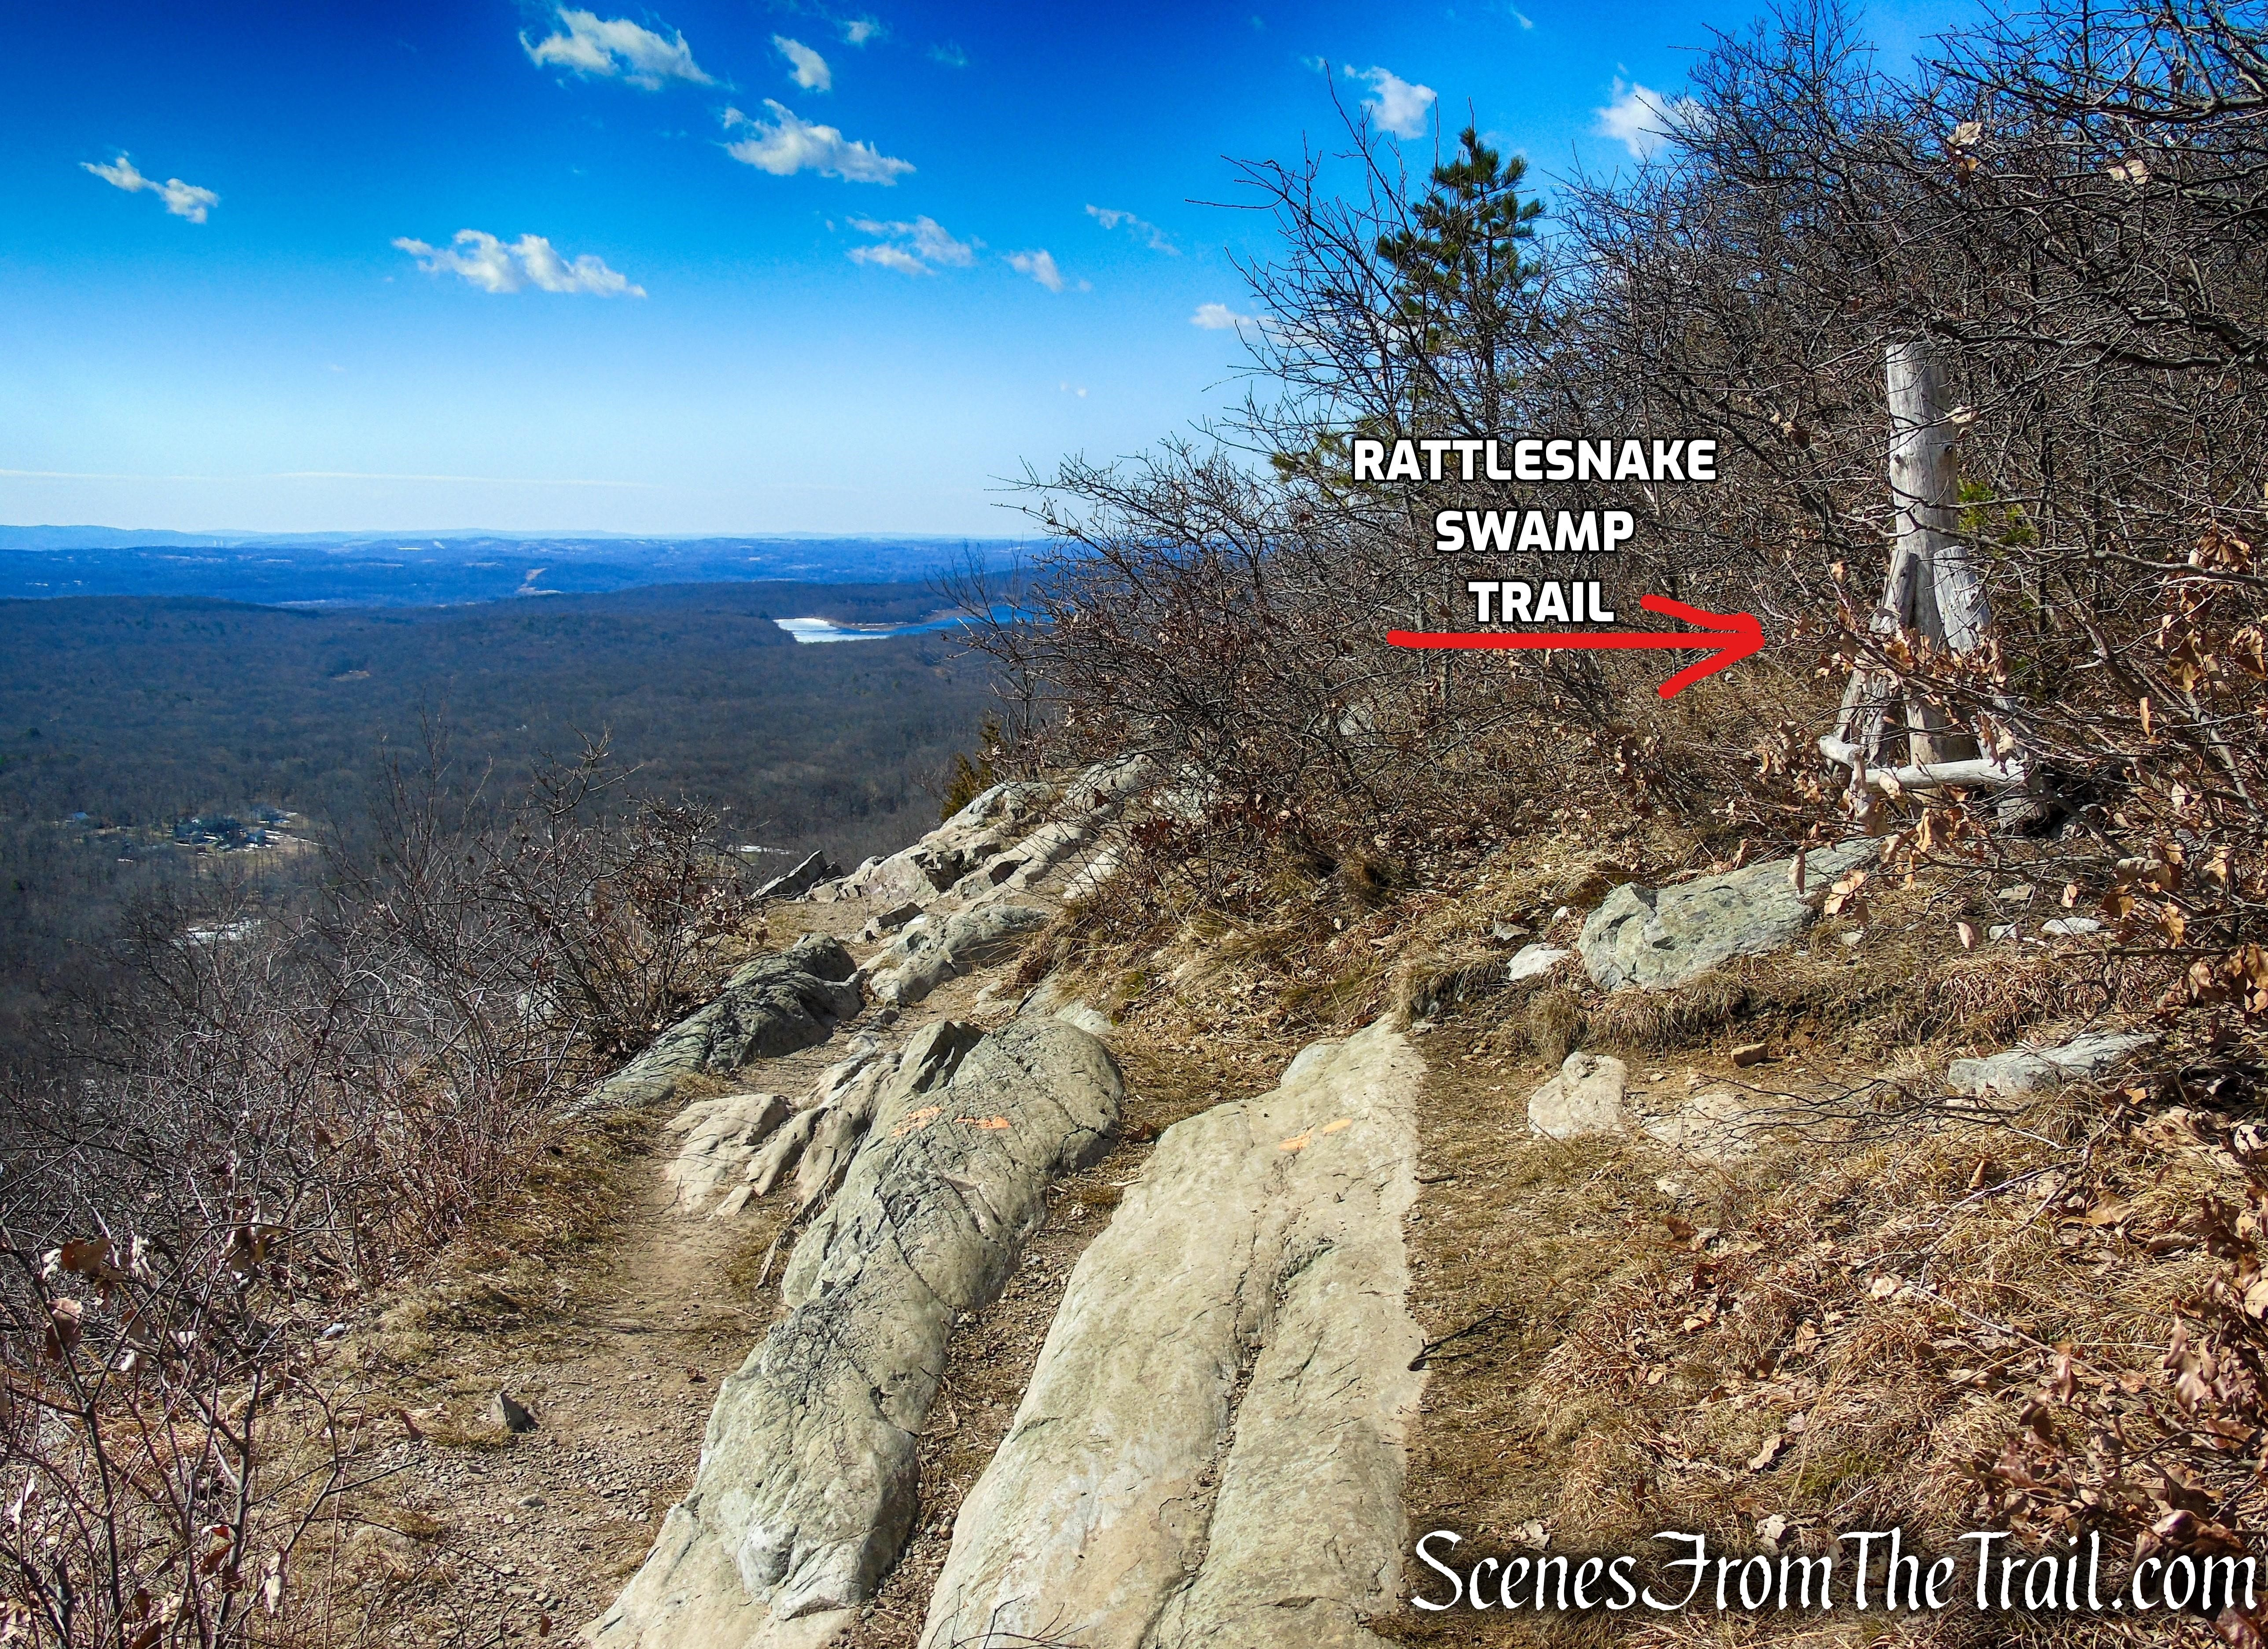 AT/Rattlesnake Swamp Trail junction – Kittatinny Ridge